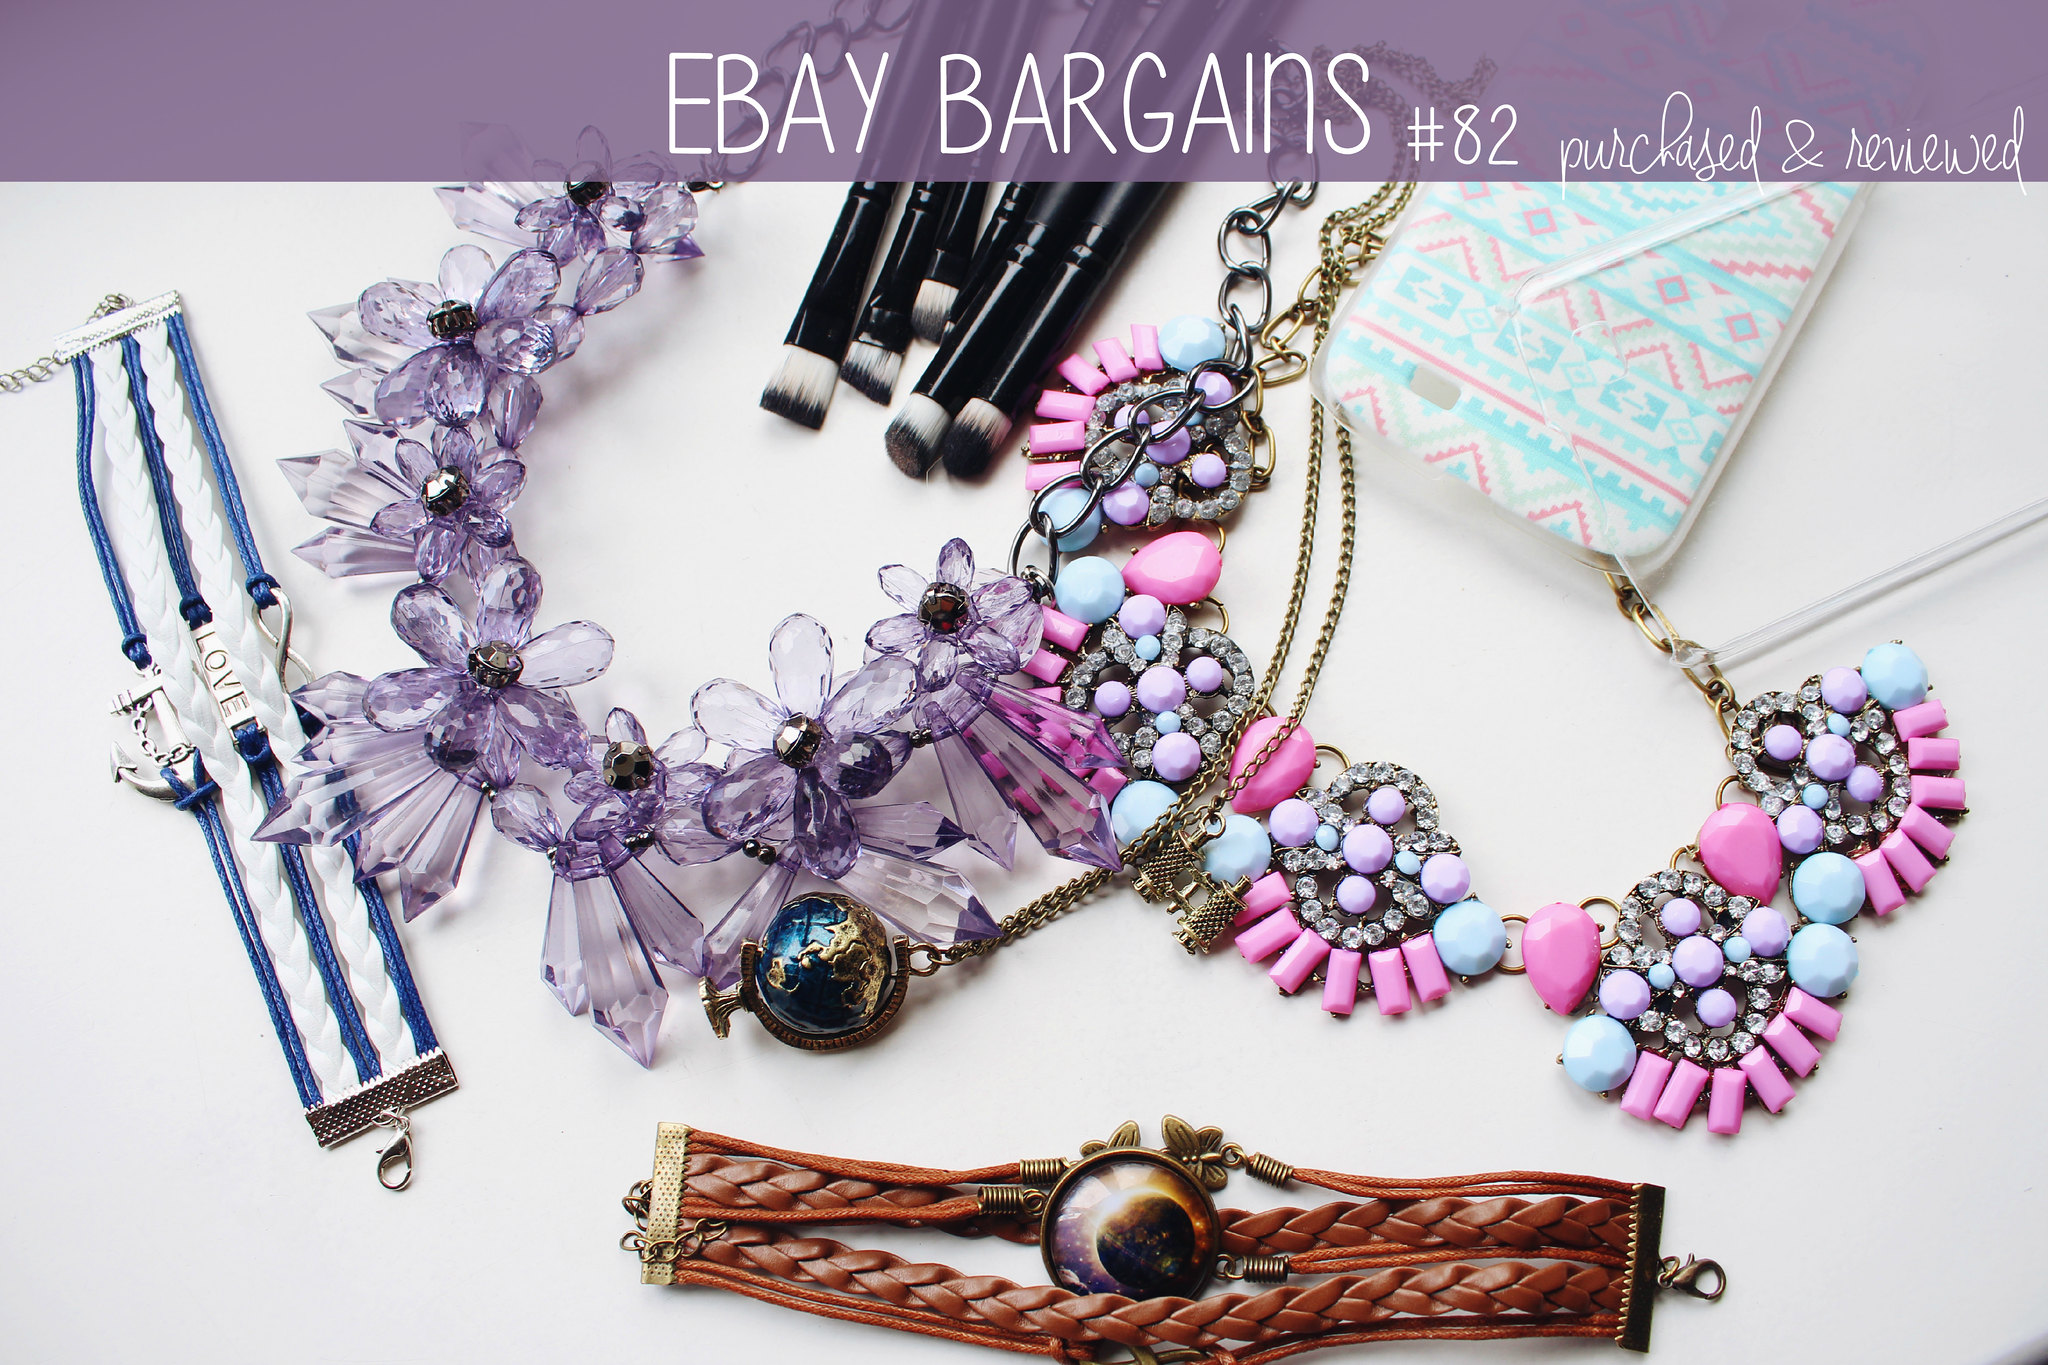 ebay-bargains-accessories